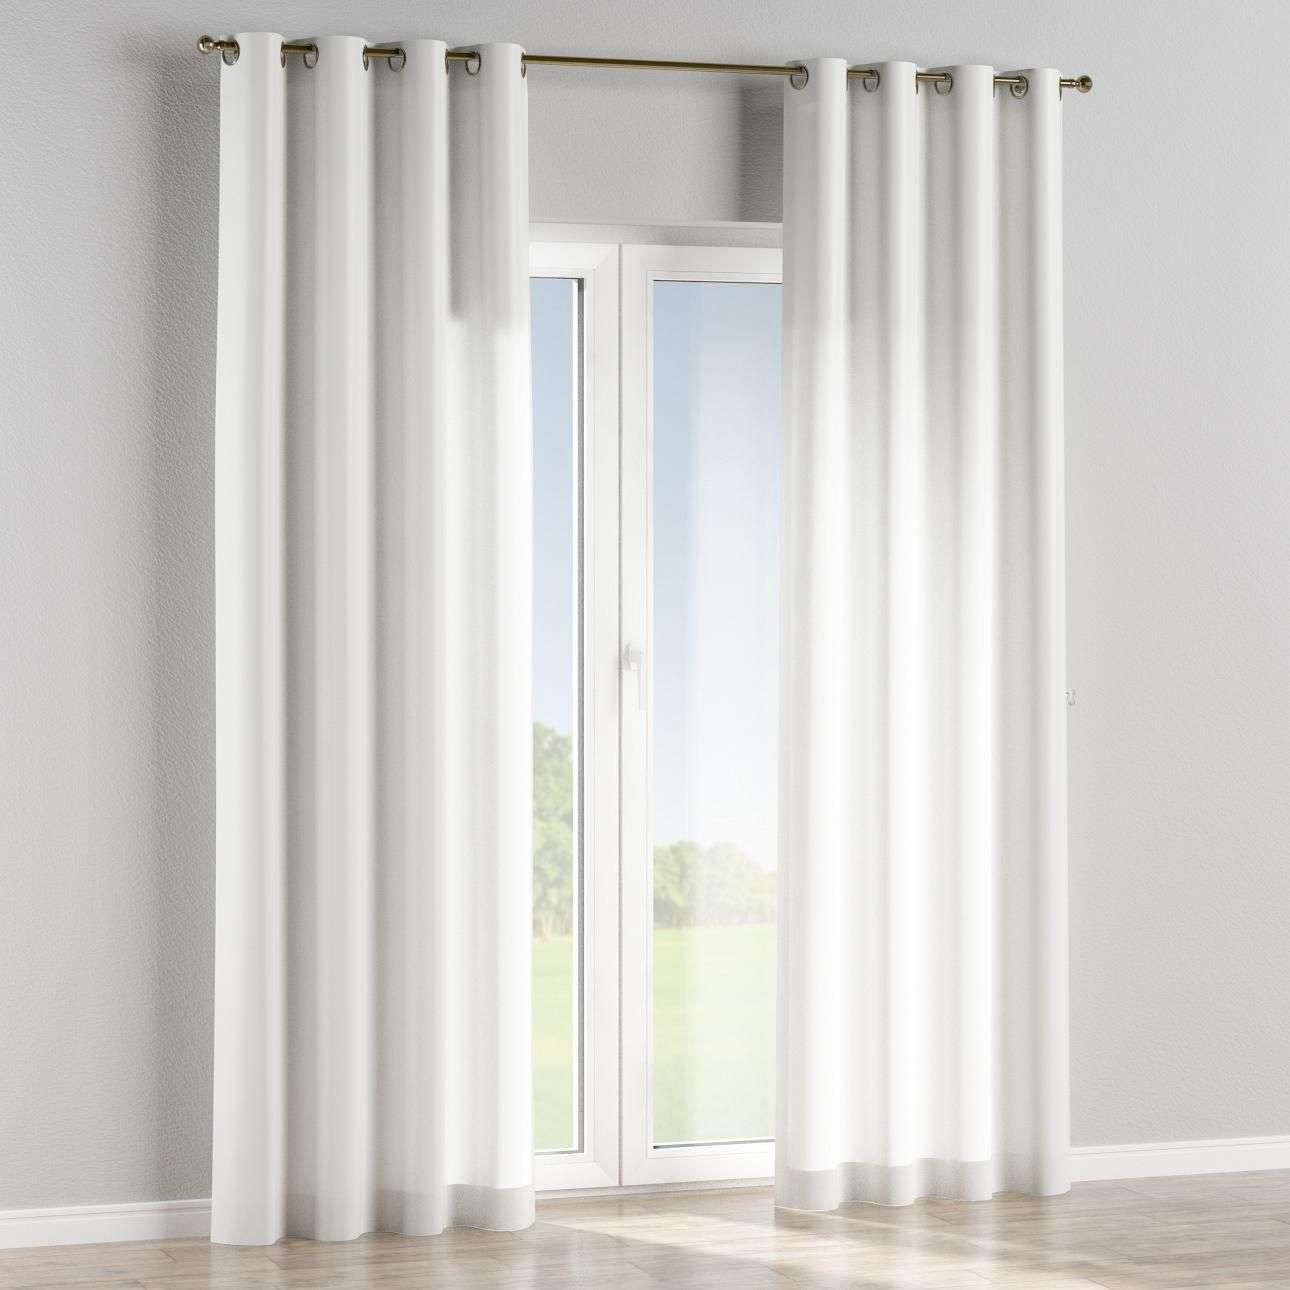 Eyelet curtains in collection Ashley, fabric: 137-46